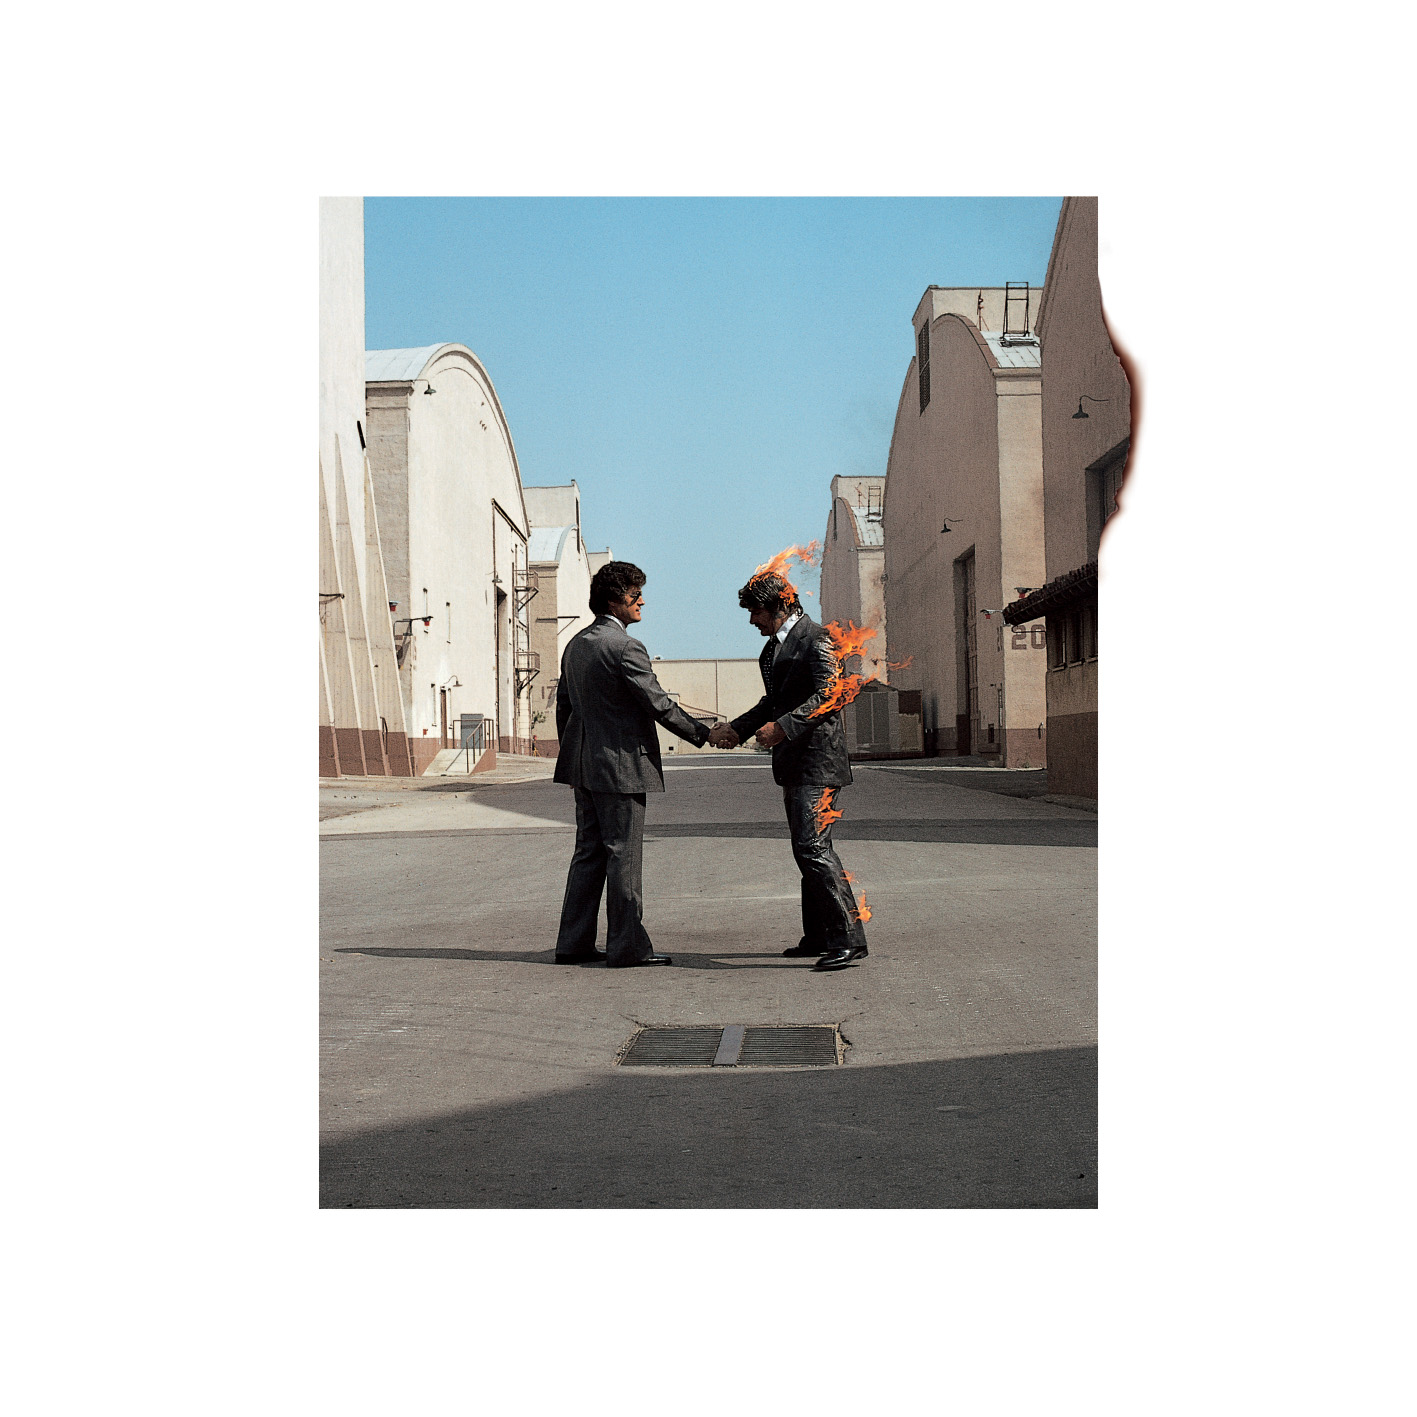 Cover art for Wish You Were Here by Hipgnosis.